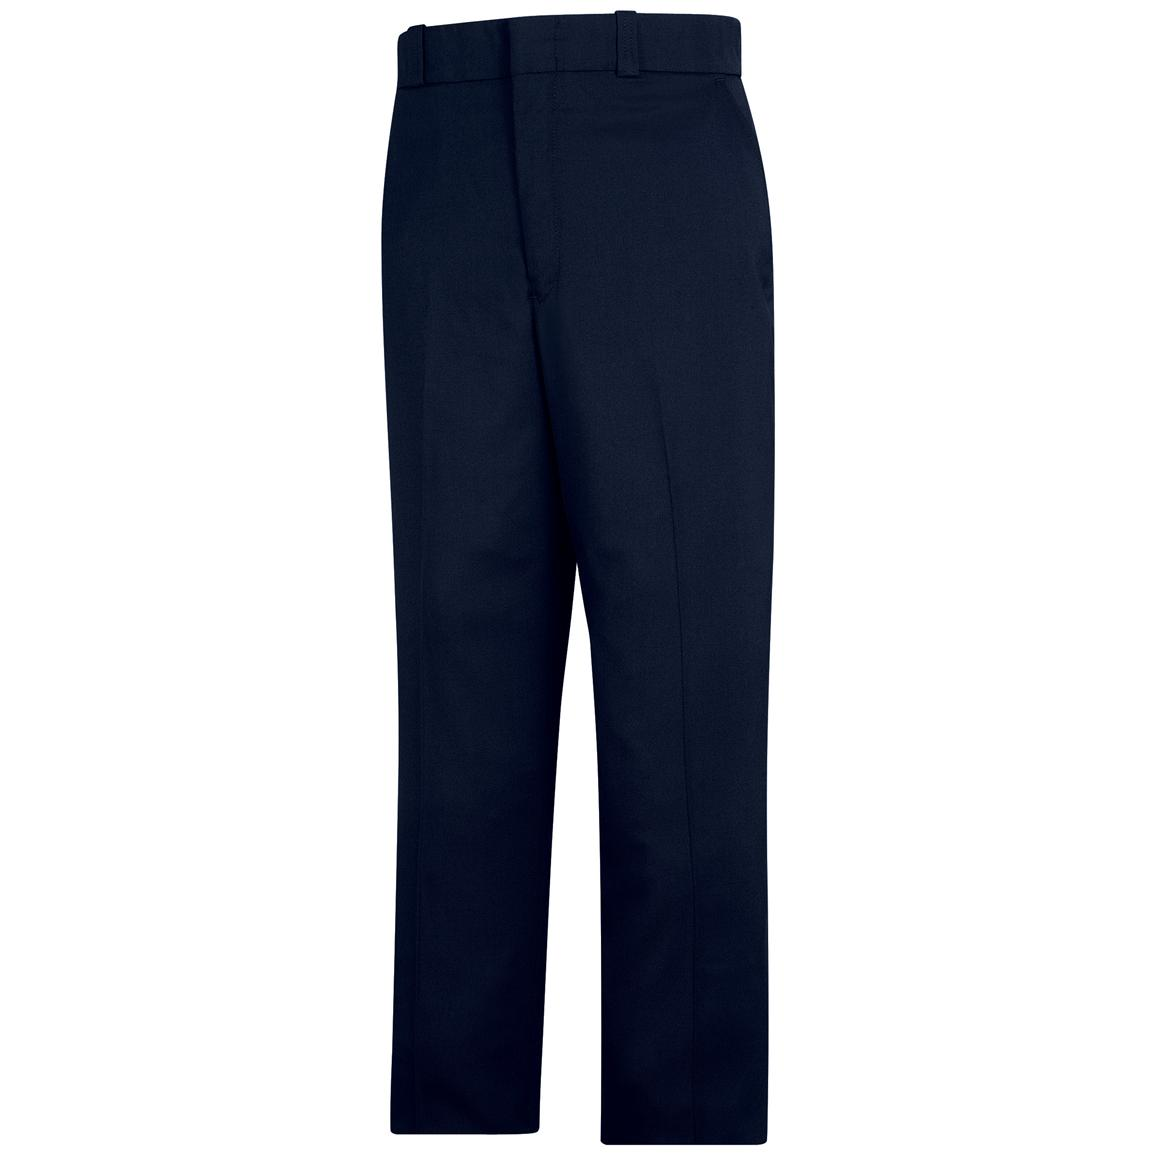 Men's Horace Small® Sentry Plus Trousers, Dark Navy